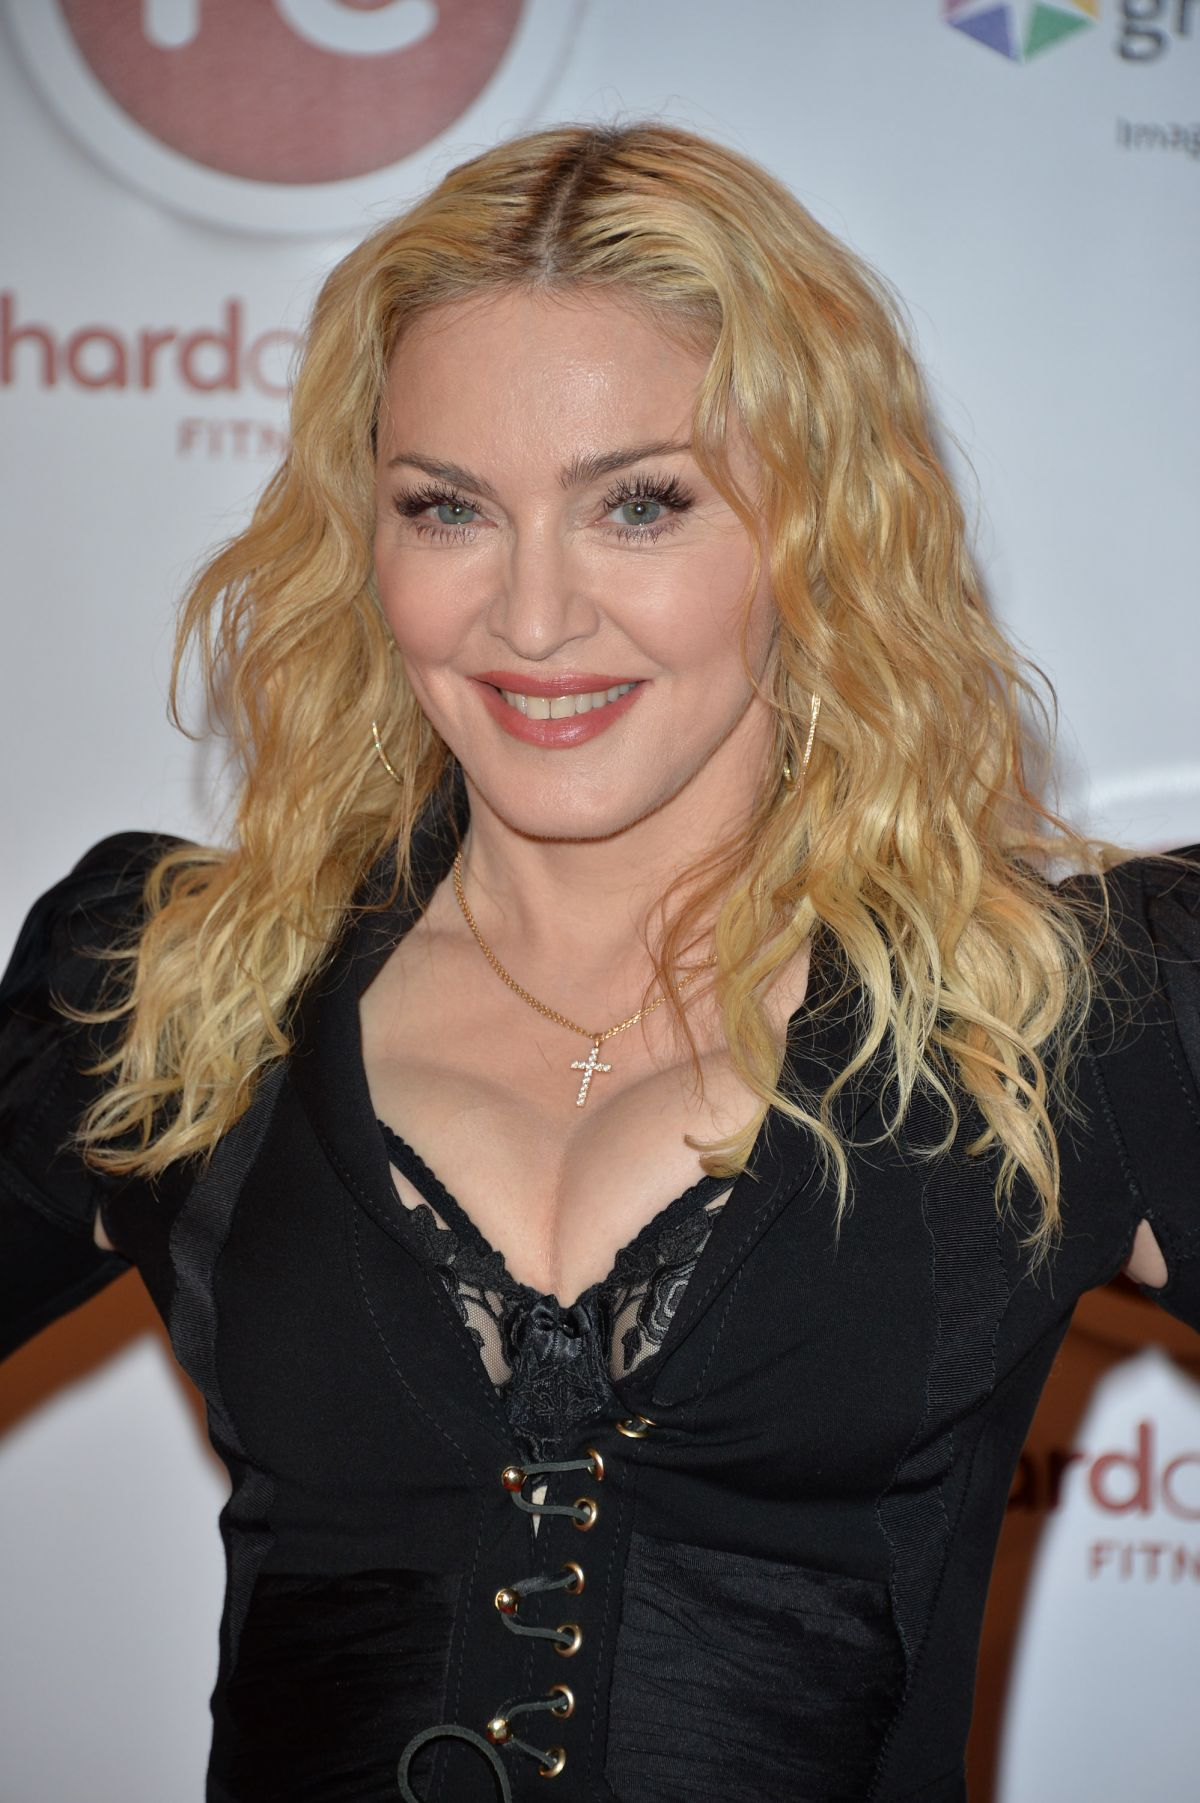 madonna-at-hard-candy-fitness-toronto-gr